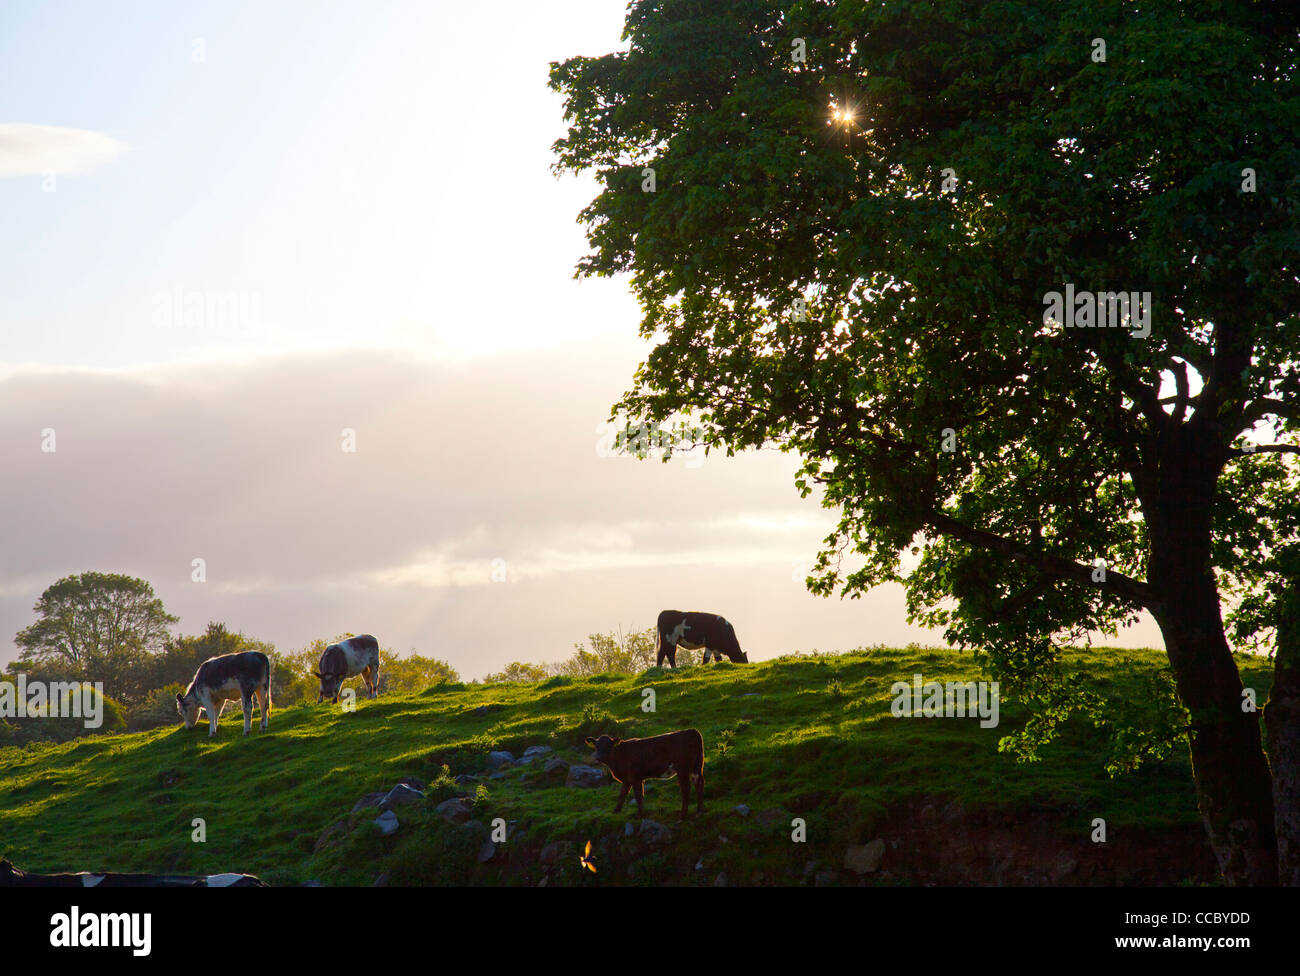 Evening cattle grazing in a field, County Mayo, Ireland. - Stock Image